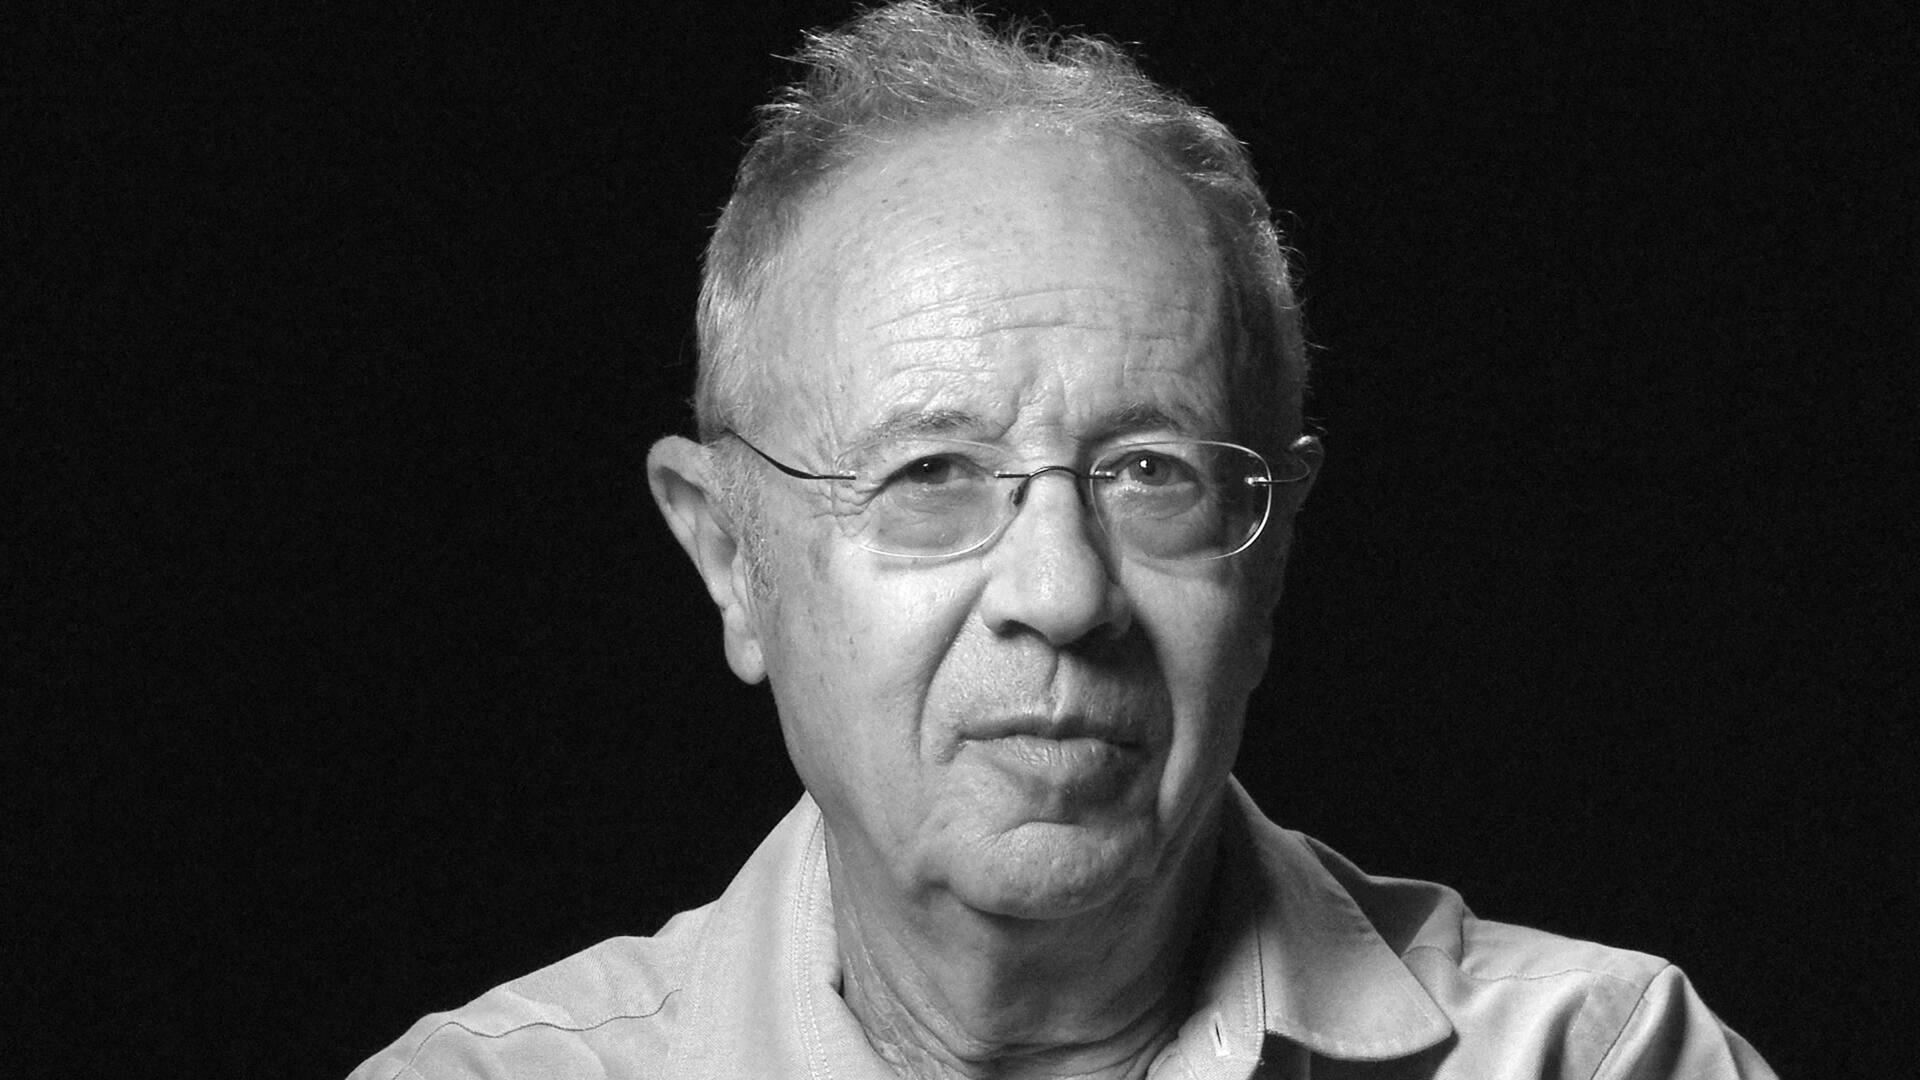 Andrew S. Grove in 2010